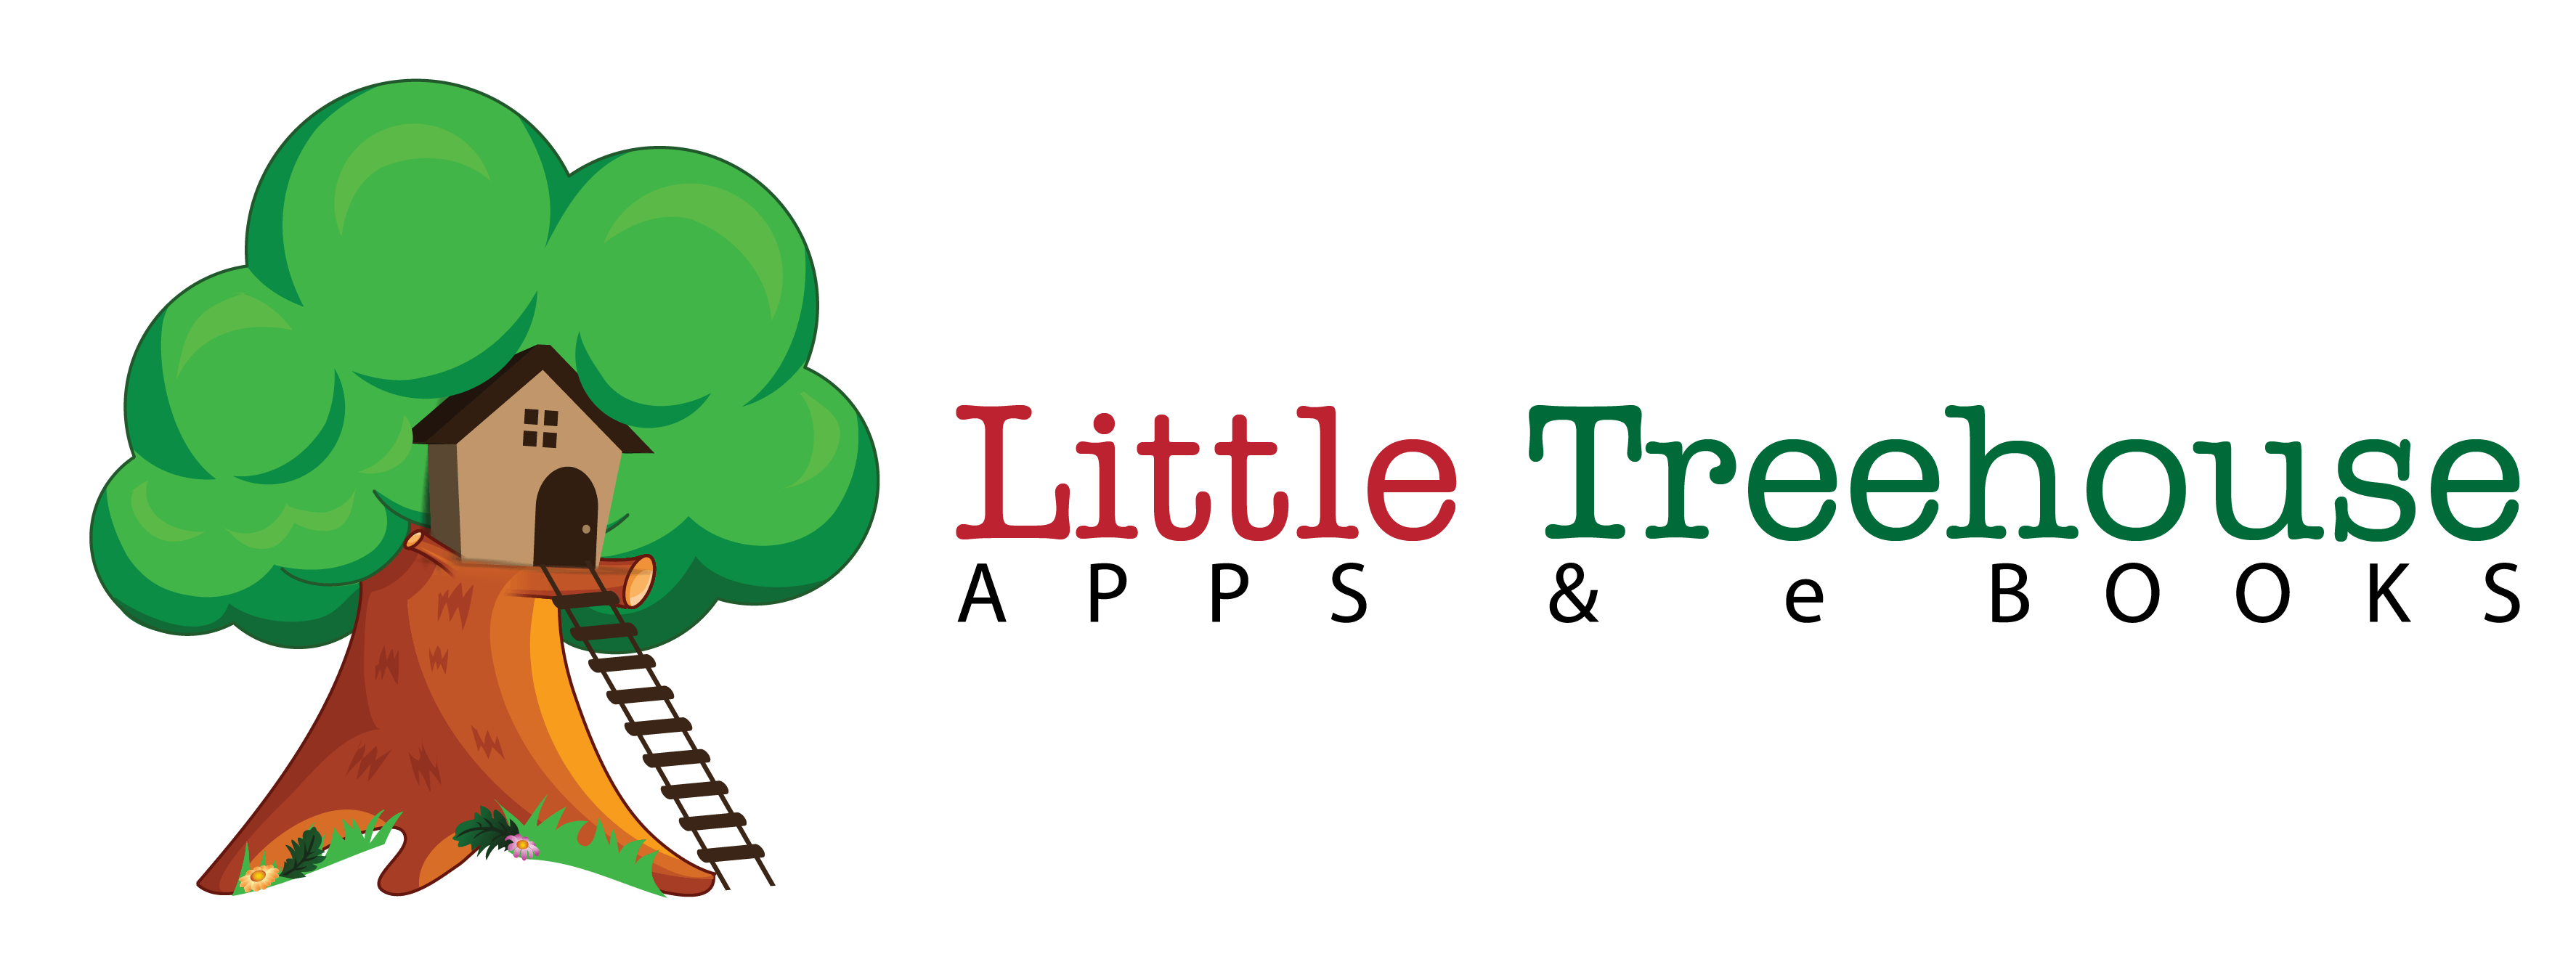 Little Treehouse Apps & Games